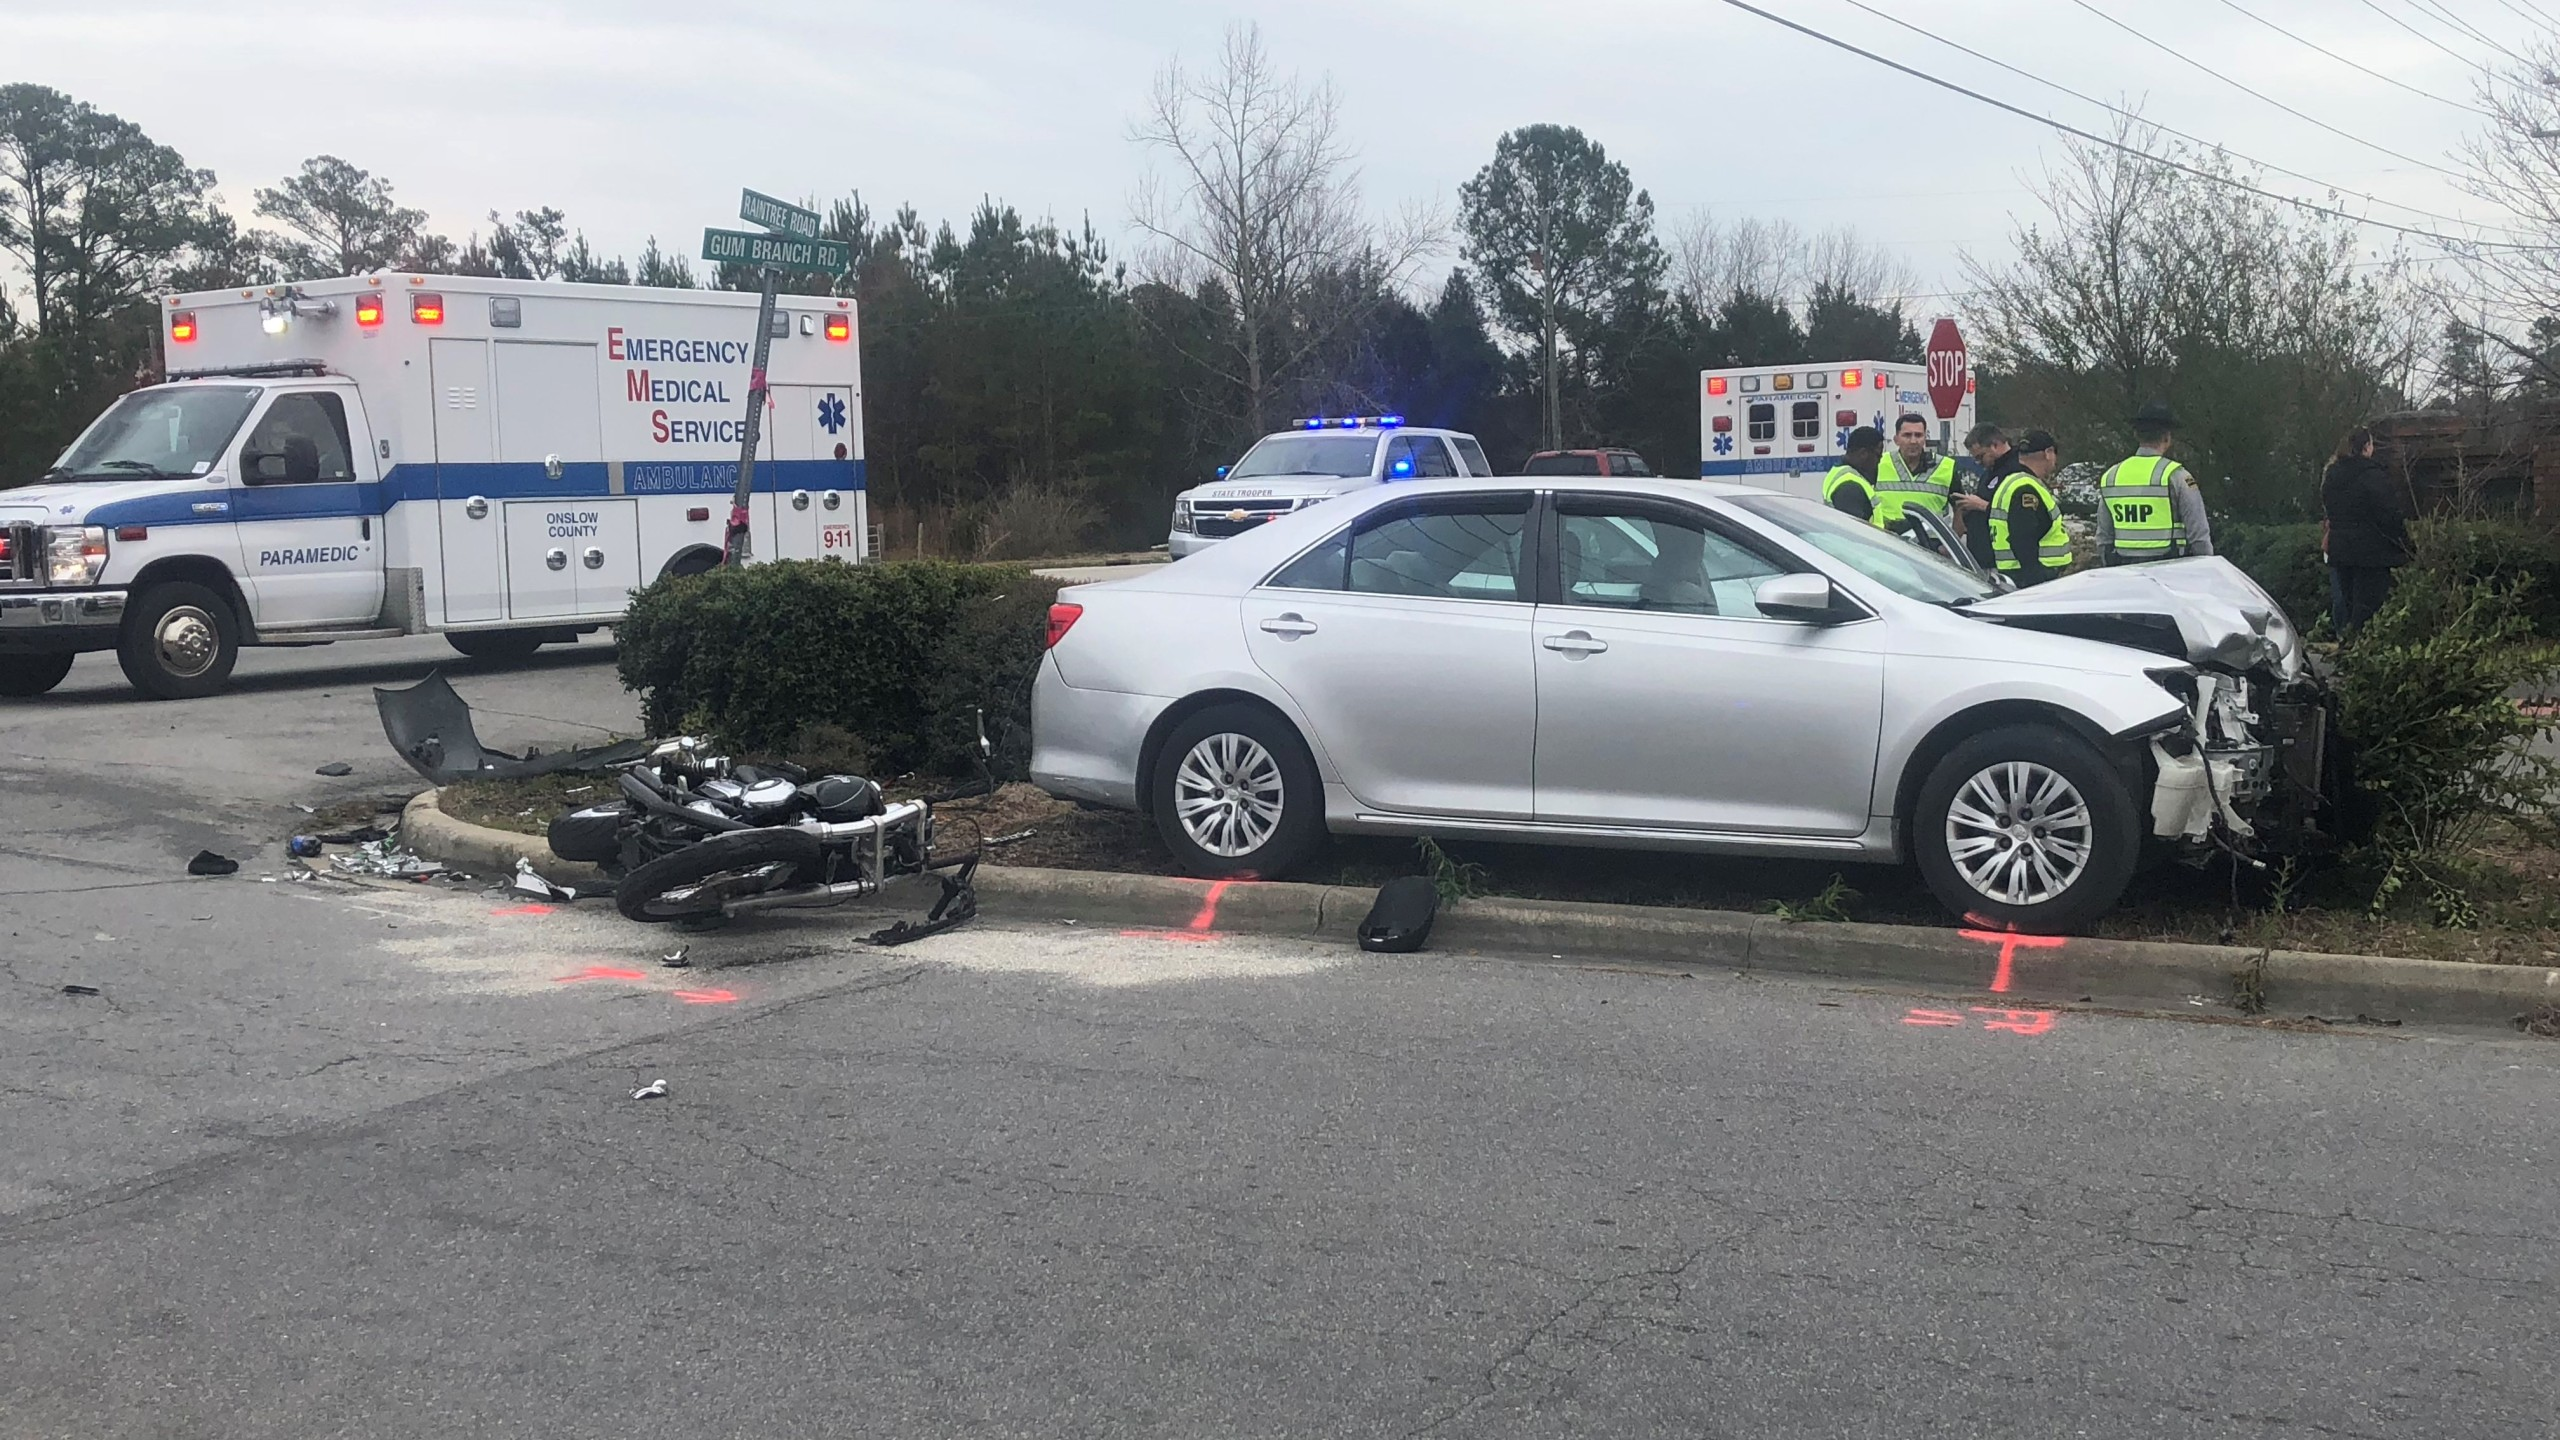 Officials investigate crash that killed motorcyclist in Jacksonville